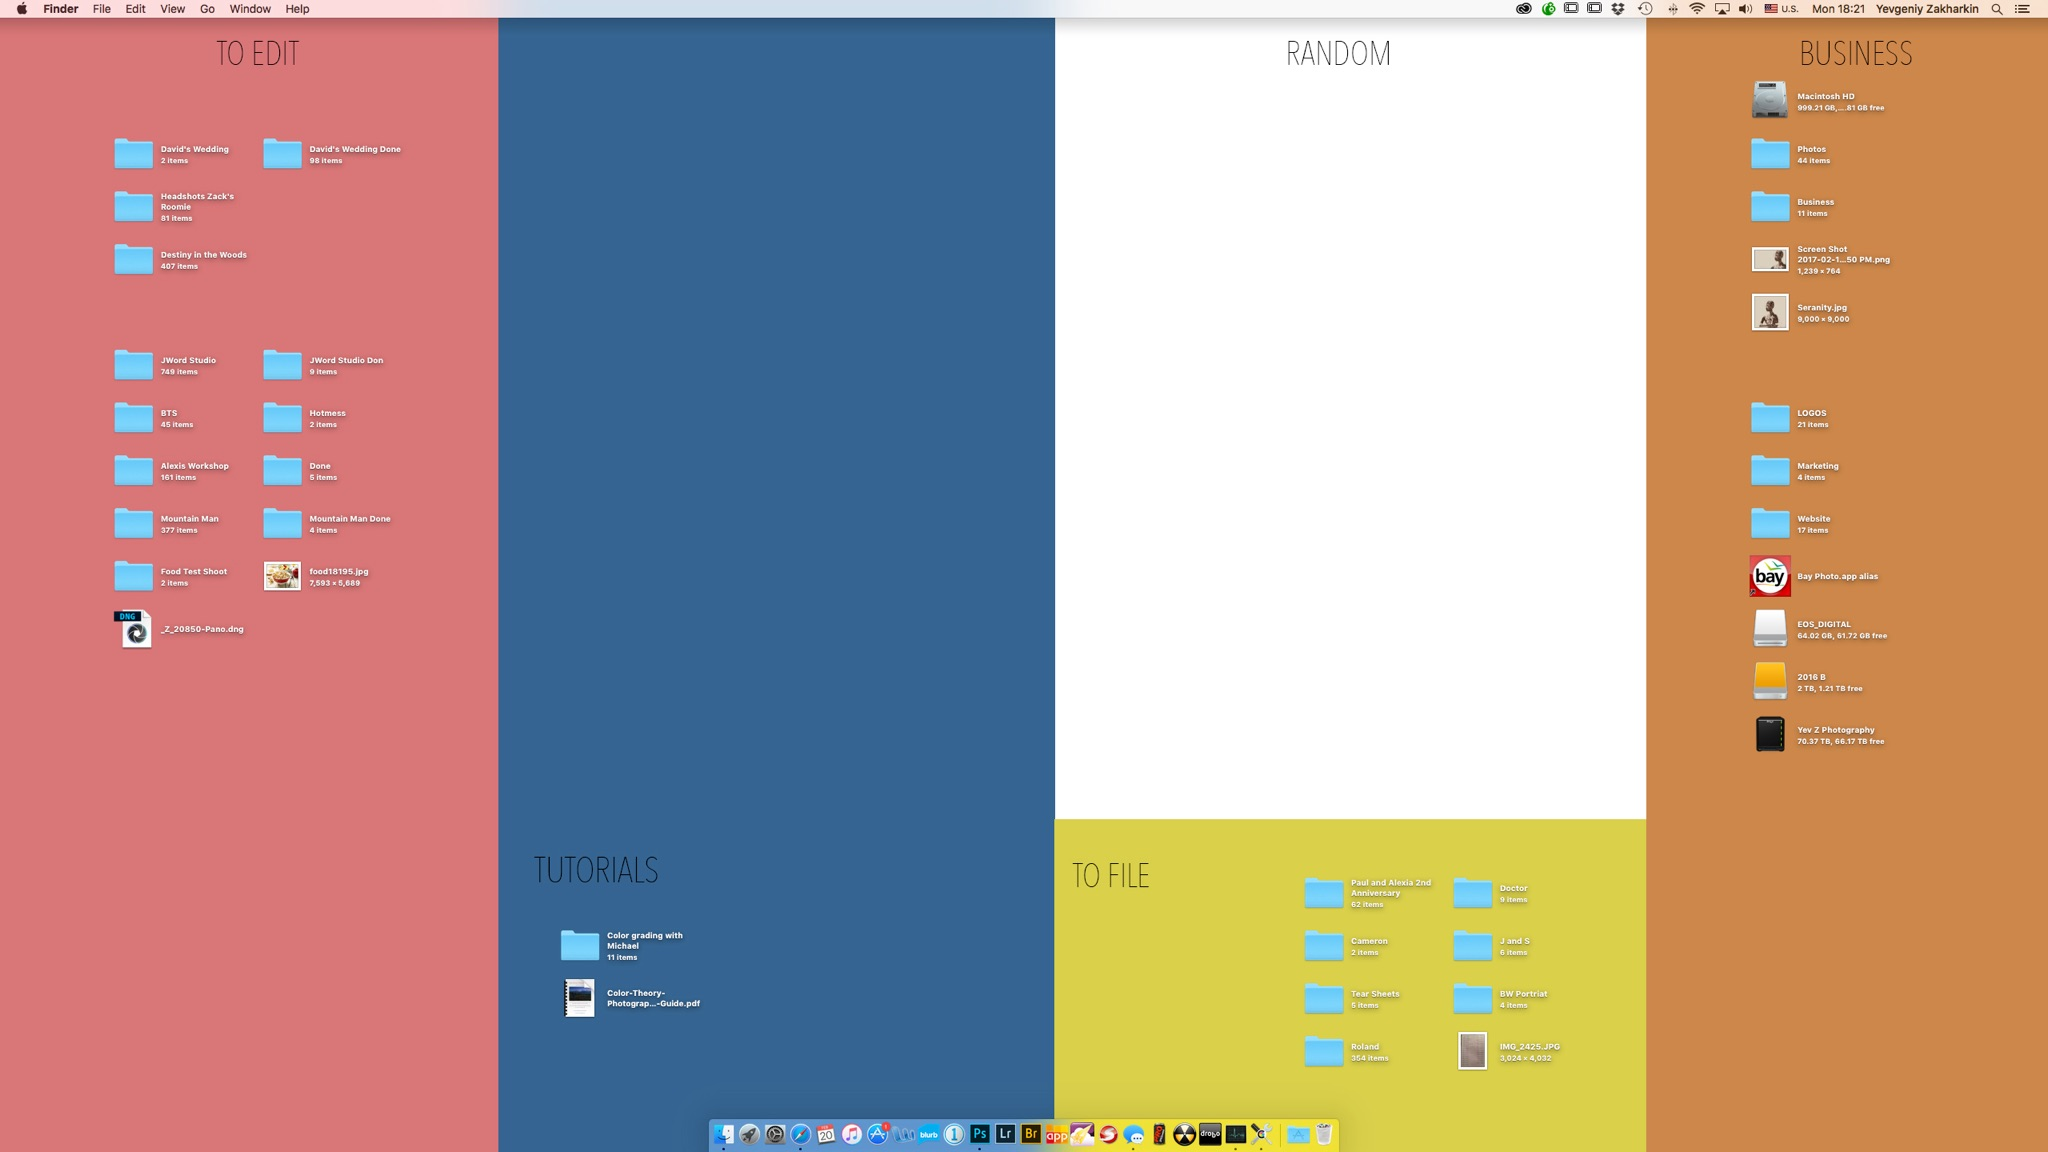 A Simple Way To Add Some Organization Your Desktop